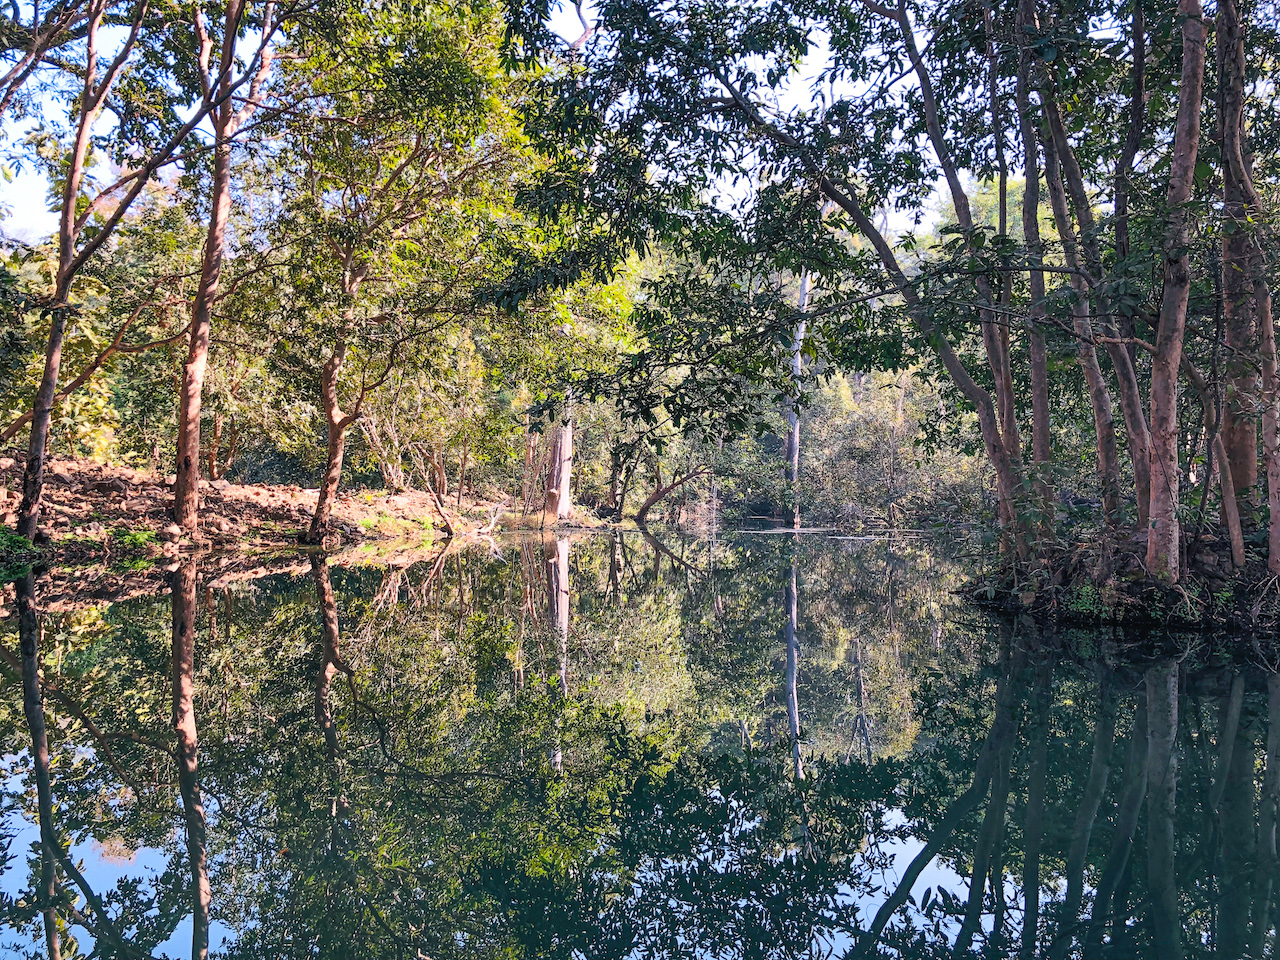 Nalas or streams, like Joodinala here, create an intricate network of waterways in the reserve, and form the main water source for animals. However, owing to topographical fractures and faults they drain after the monsoons. Photo: Suresh Kumar Yadav